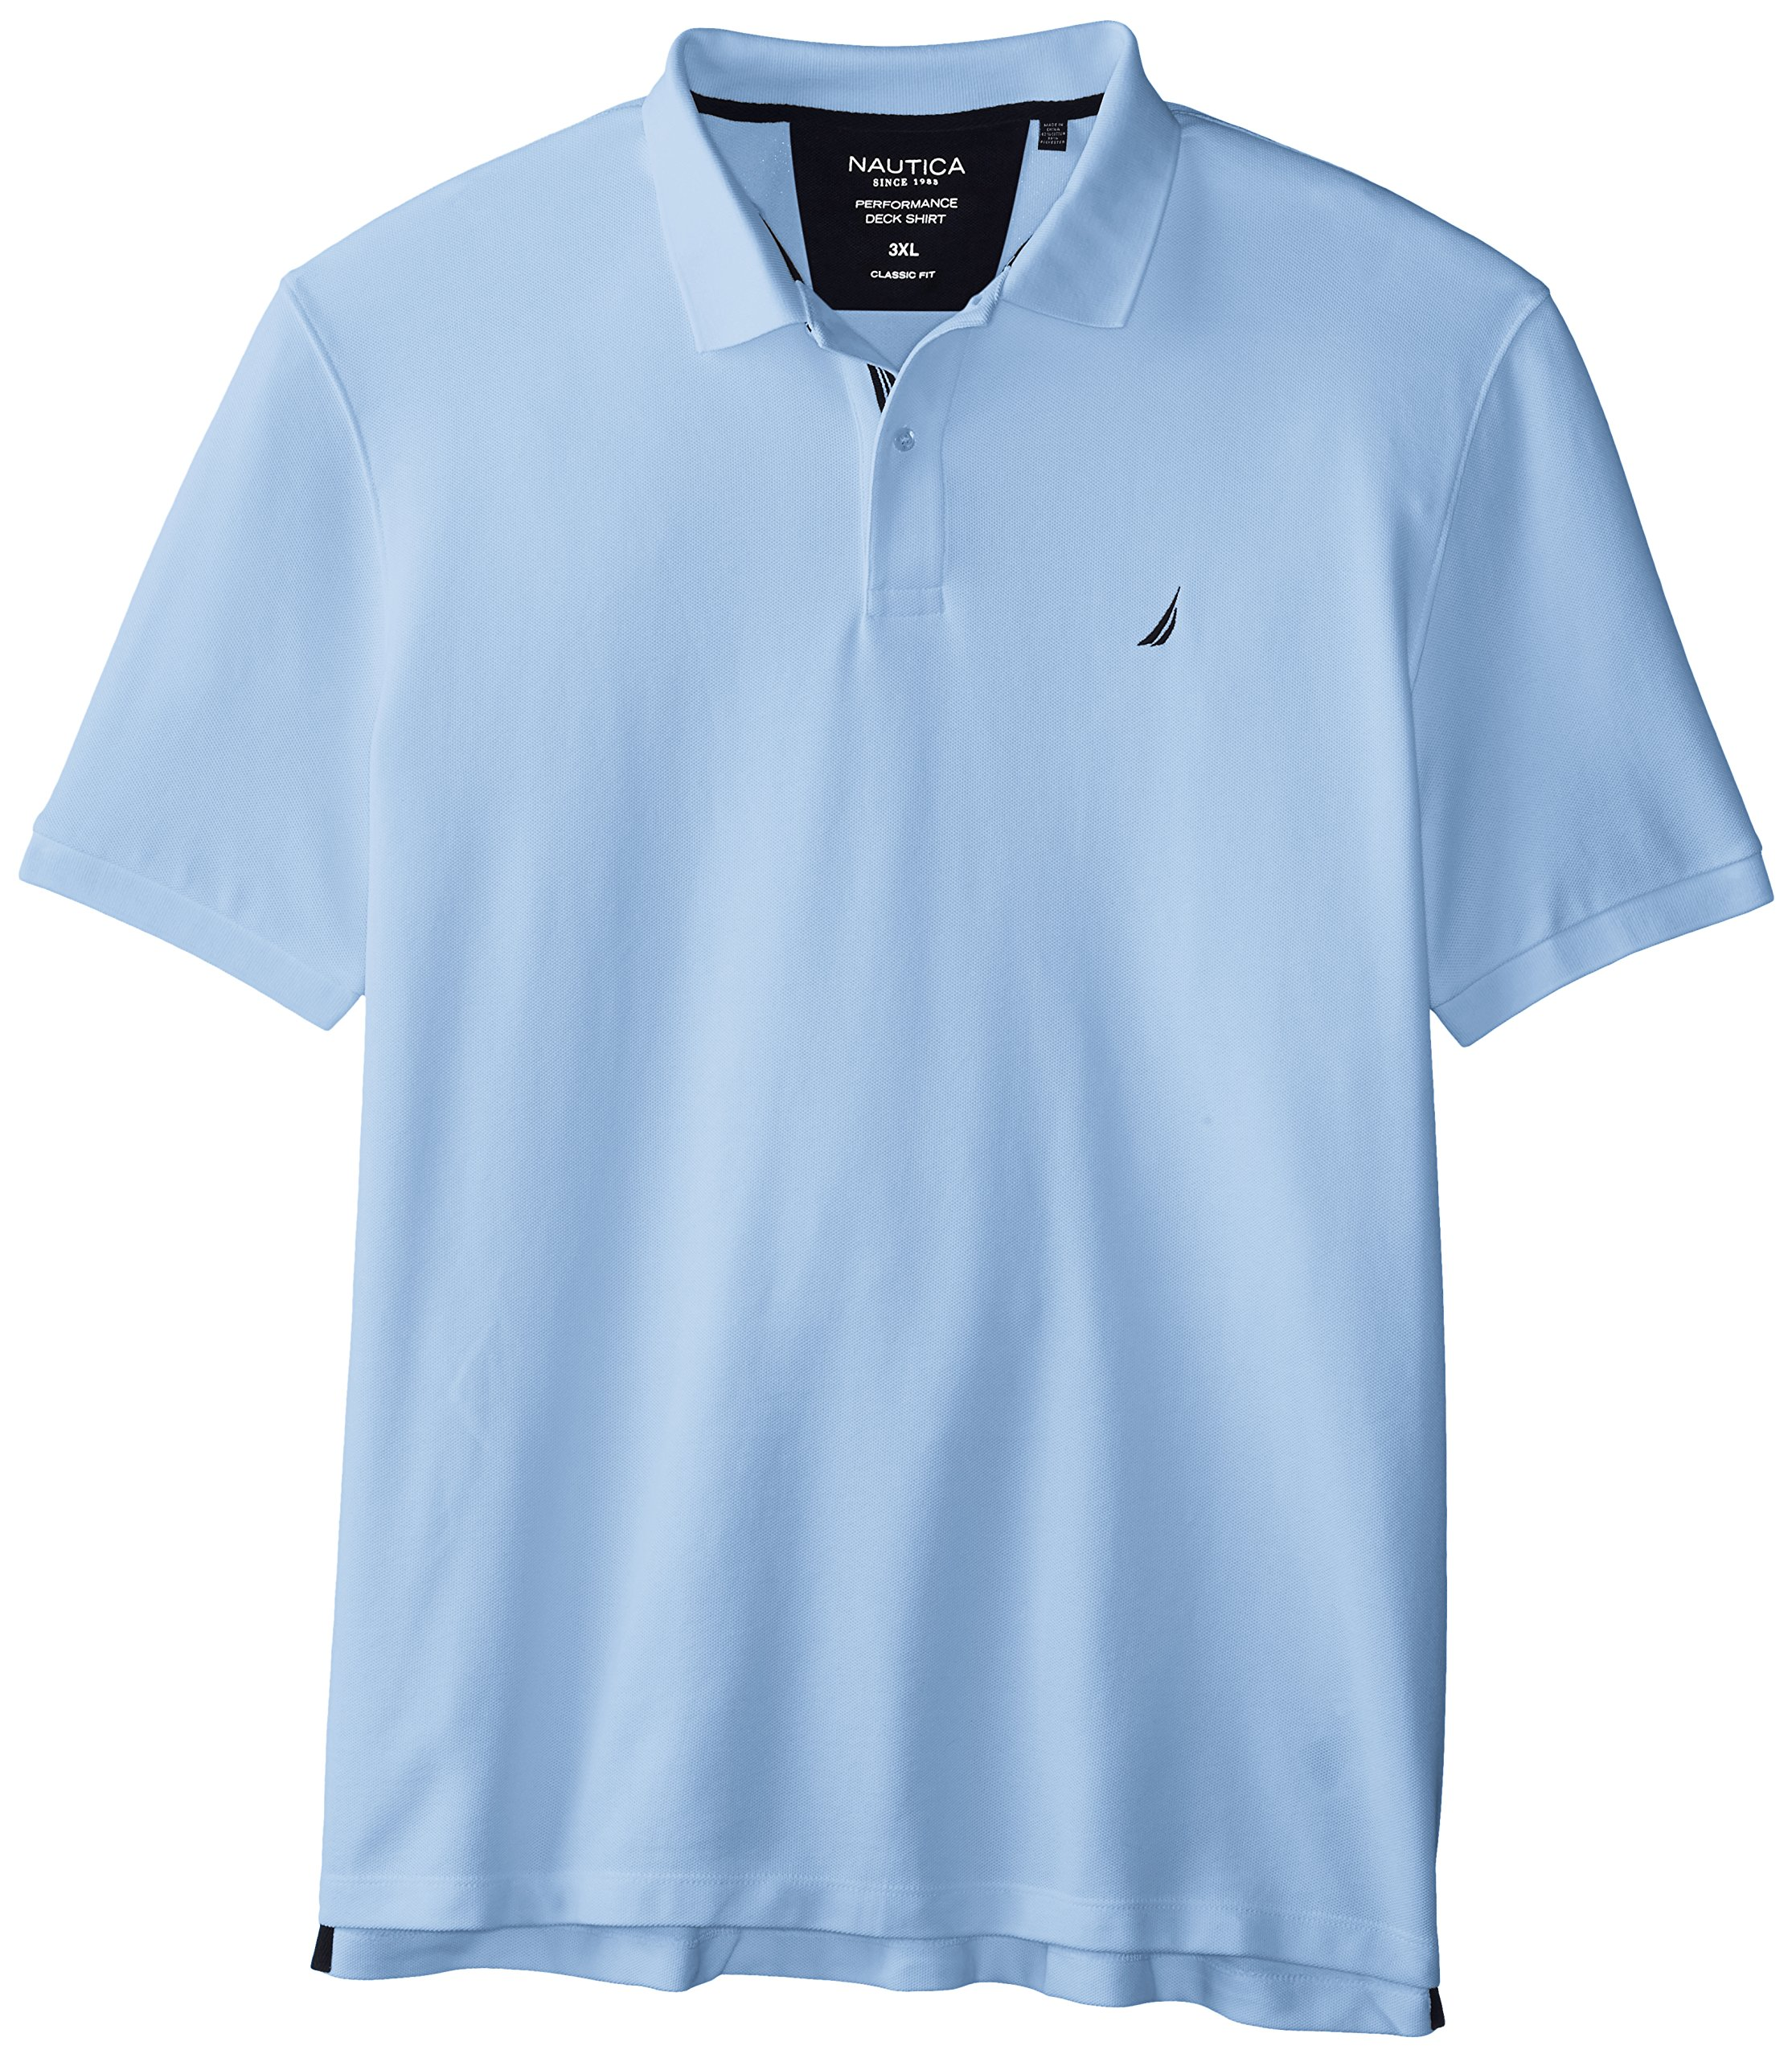 Nautica Men's Short Sleeve Solid Deck Polo Shirt, Noon Blue, X-Large